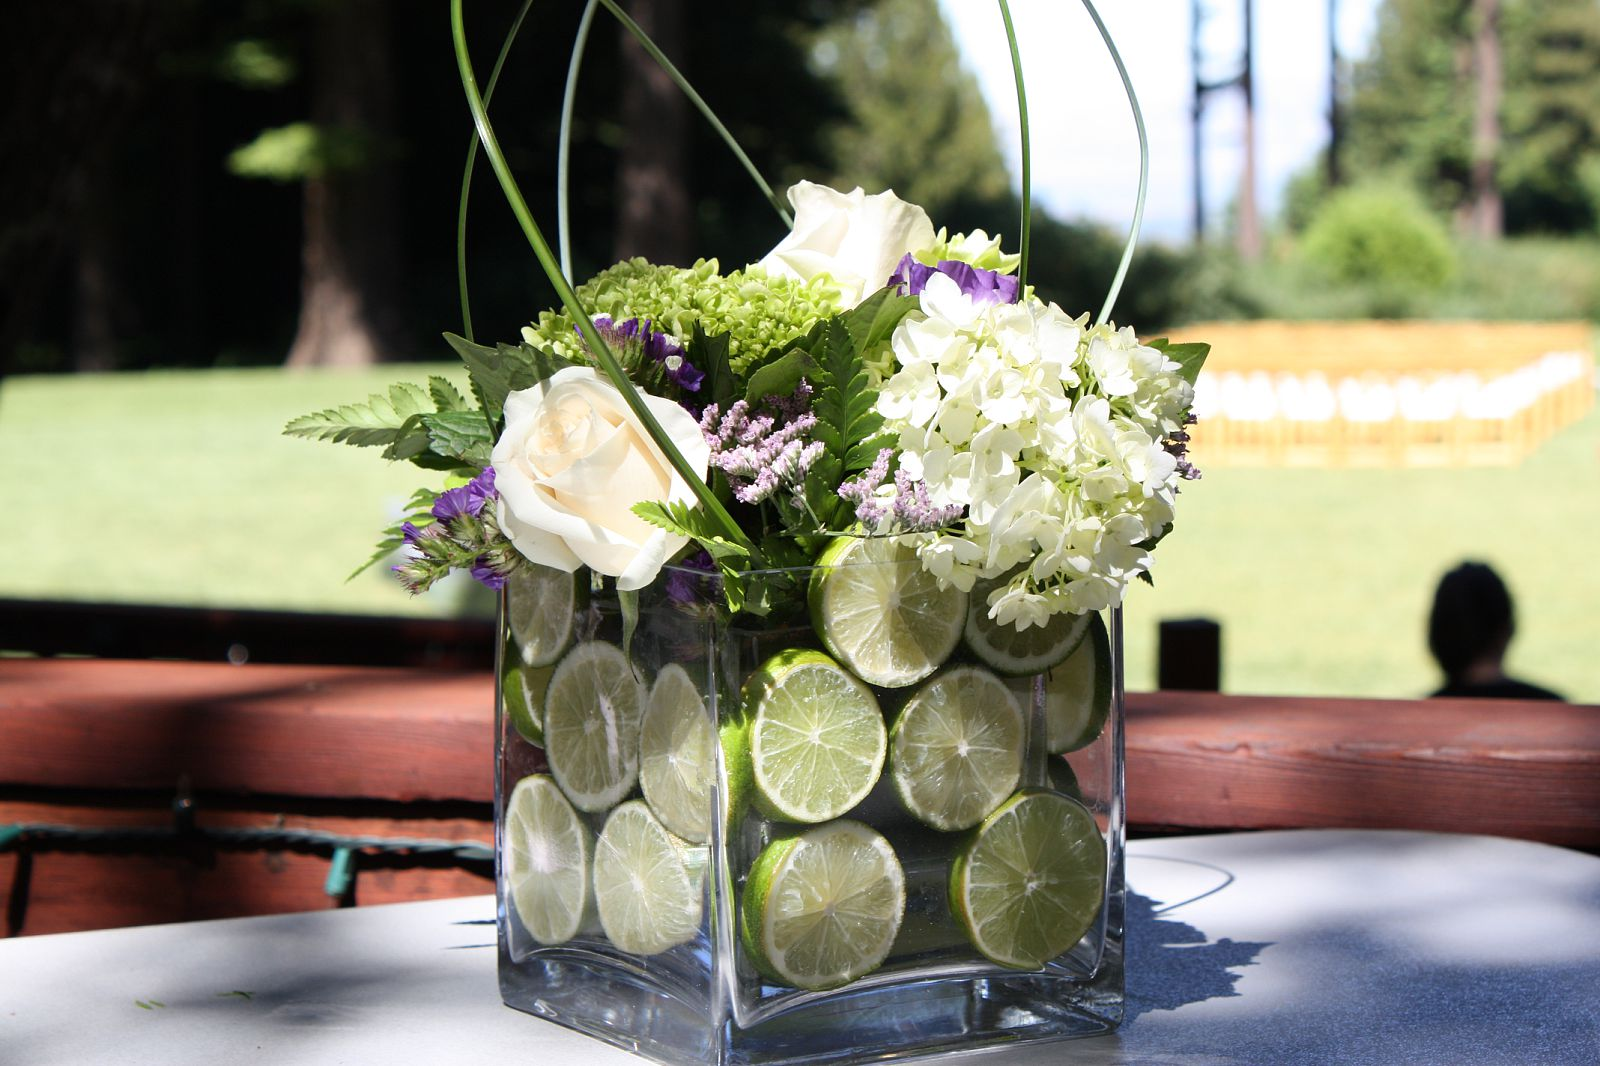 4 Out Of The Box Ways To Make Money As A Florist